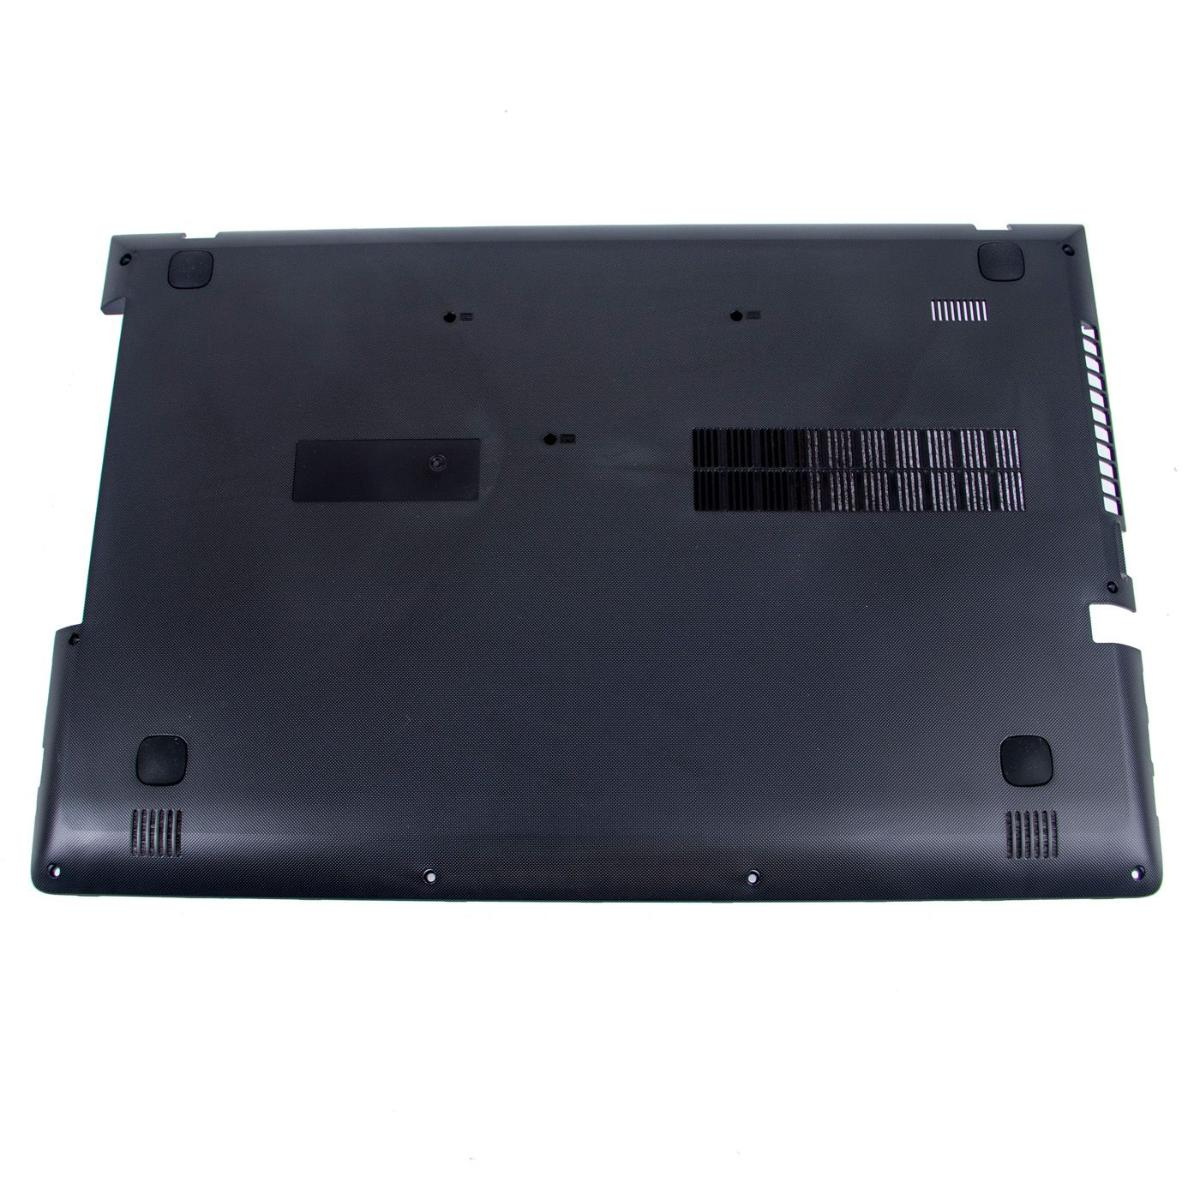 Πλαστικό Laptop - Bottom Case - Cover D Lenovo IdeaPad Z51-70 80k6 y50c 500-15ISK 500-15ACZ AP1BJ000300 AP1BJ000310 FA1BJ000100 FA1BJ000110 5CB0J23702 AP1BJ000320 5CB0J23683 FA1BJ000100 35040204 35040249 Bottom Base Cover Chassis (Κωδ. 1-COV007BLACK)